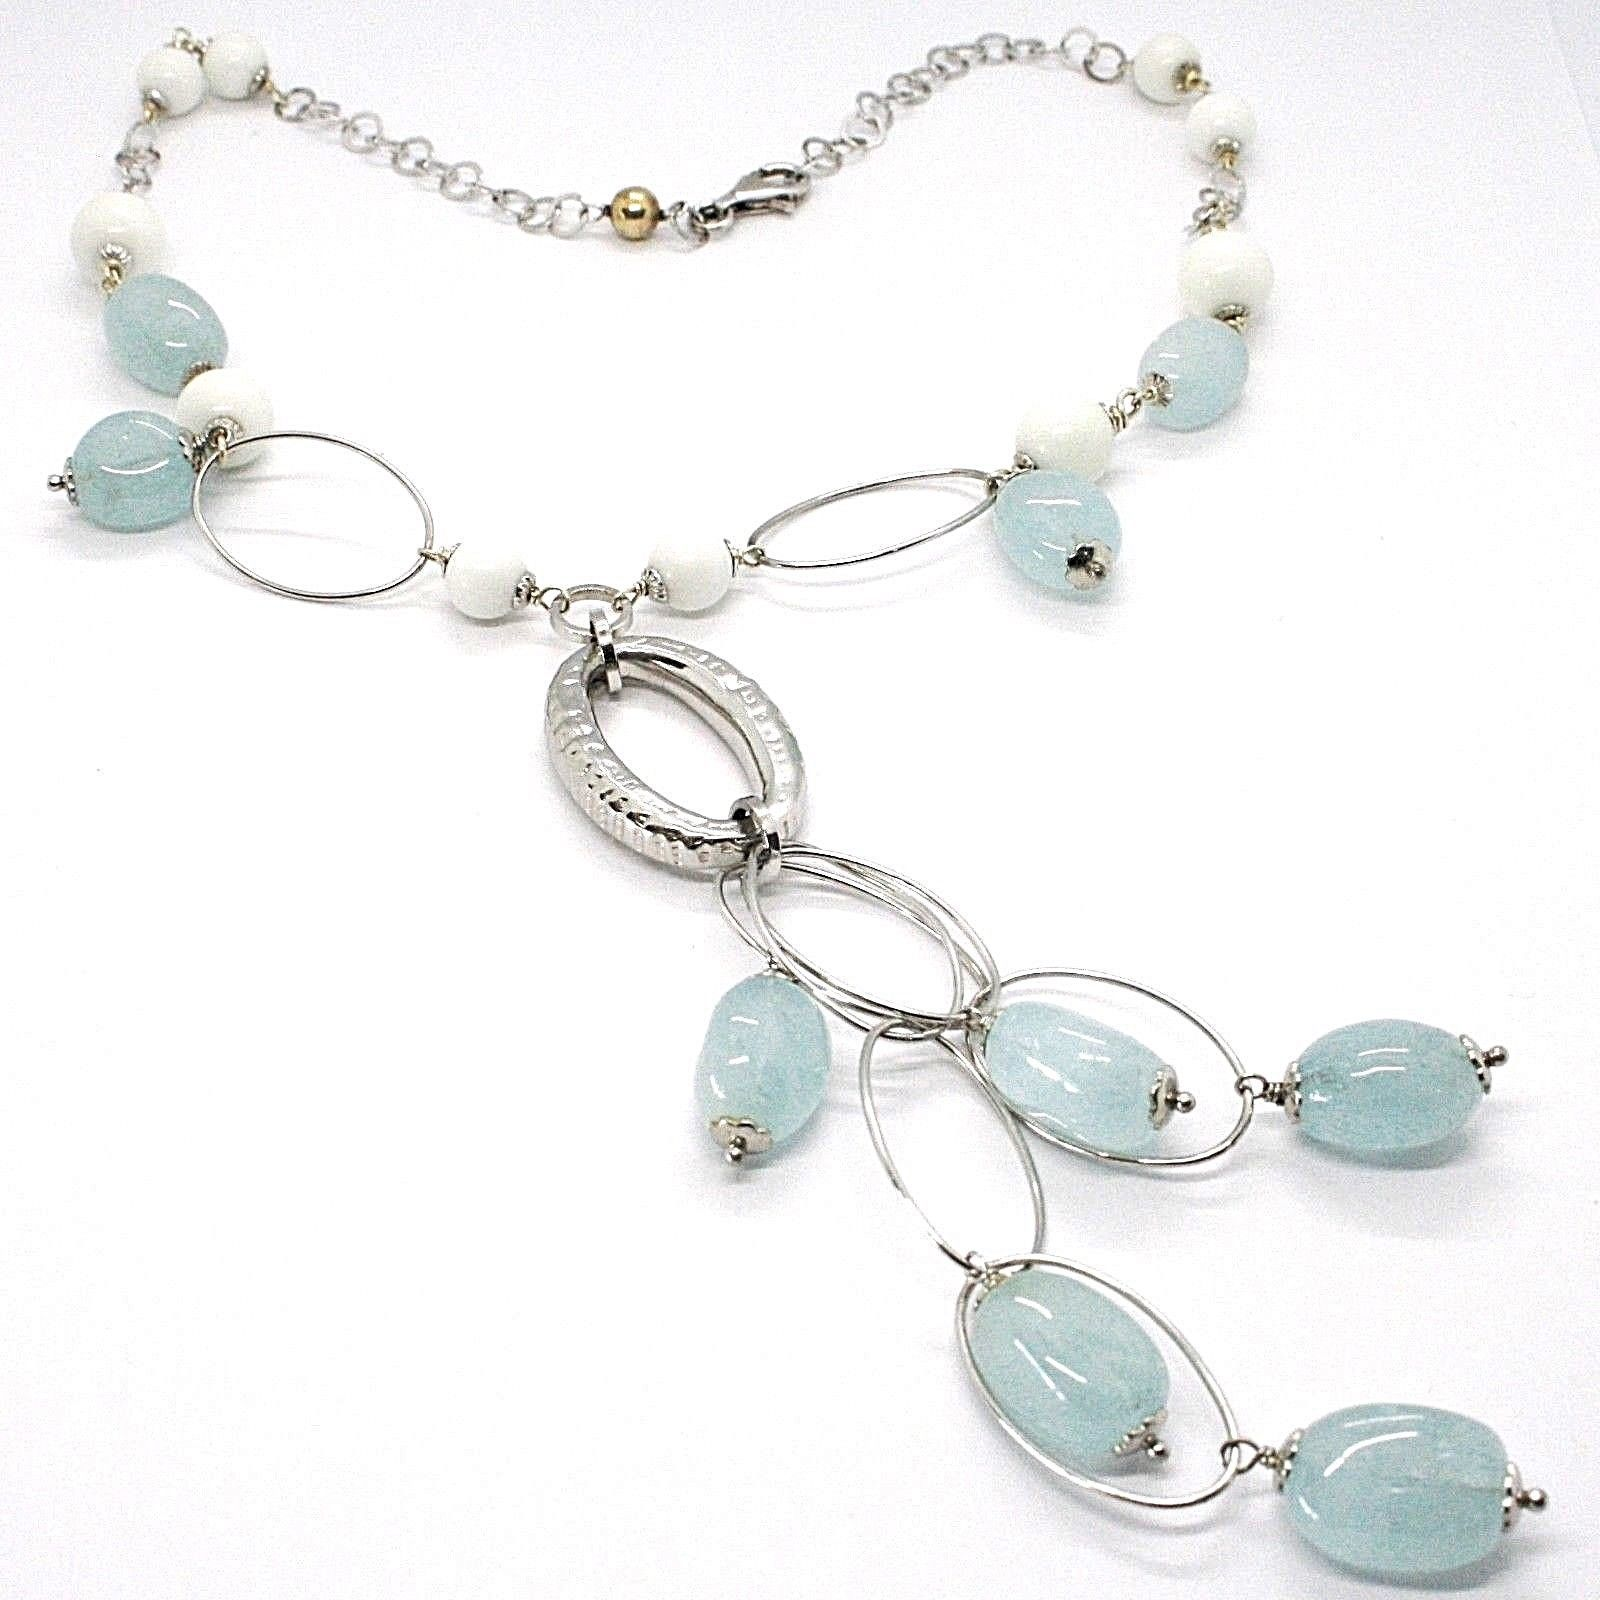 SILVER 925 NECKLACE, SPHERES AGATE WHITE, AQUAMARINE DROP, PENDANT, OVALS